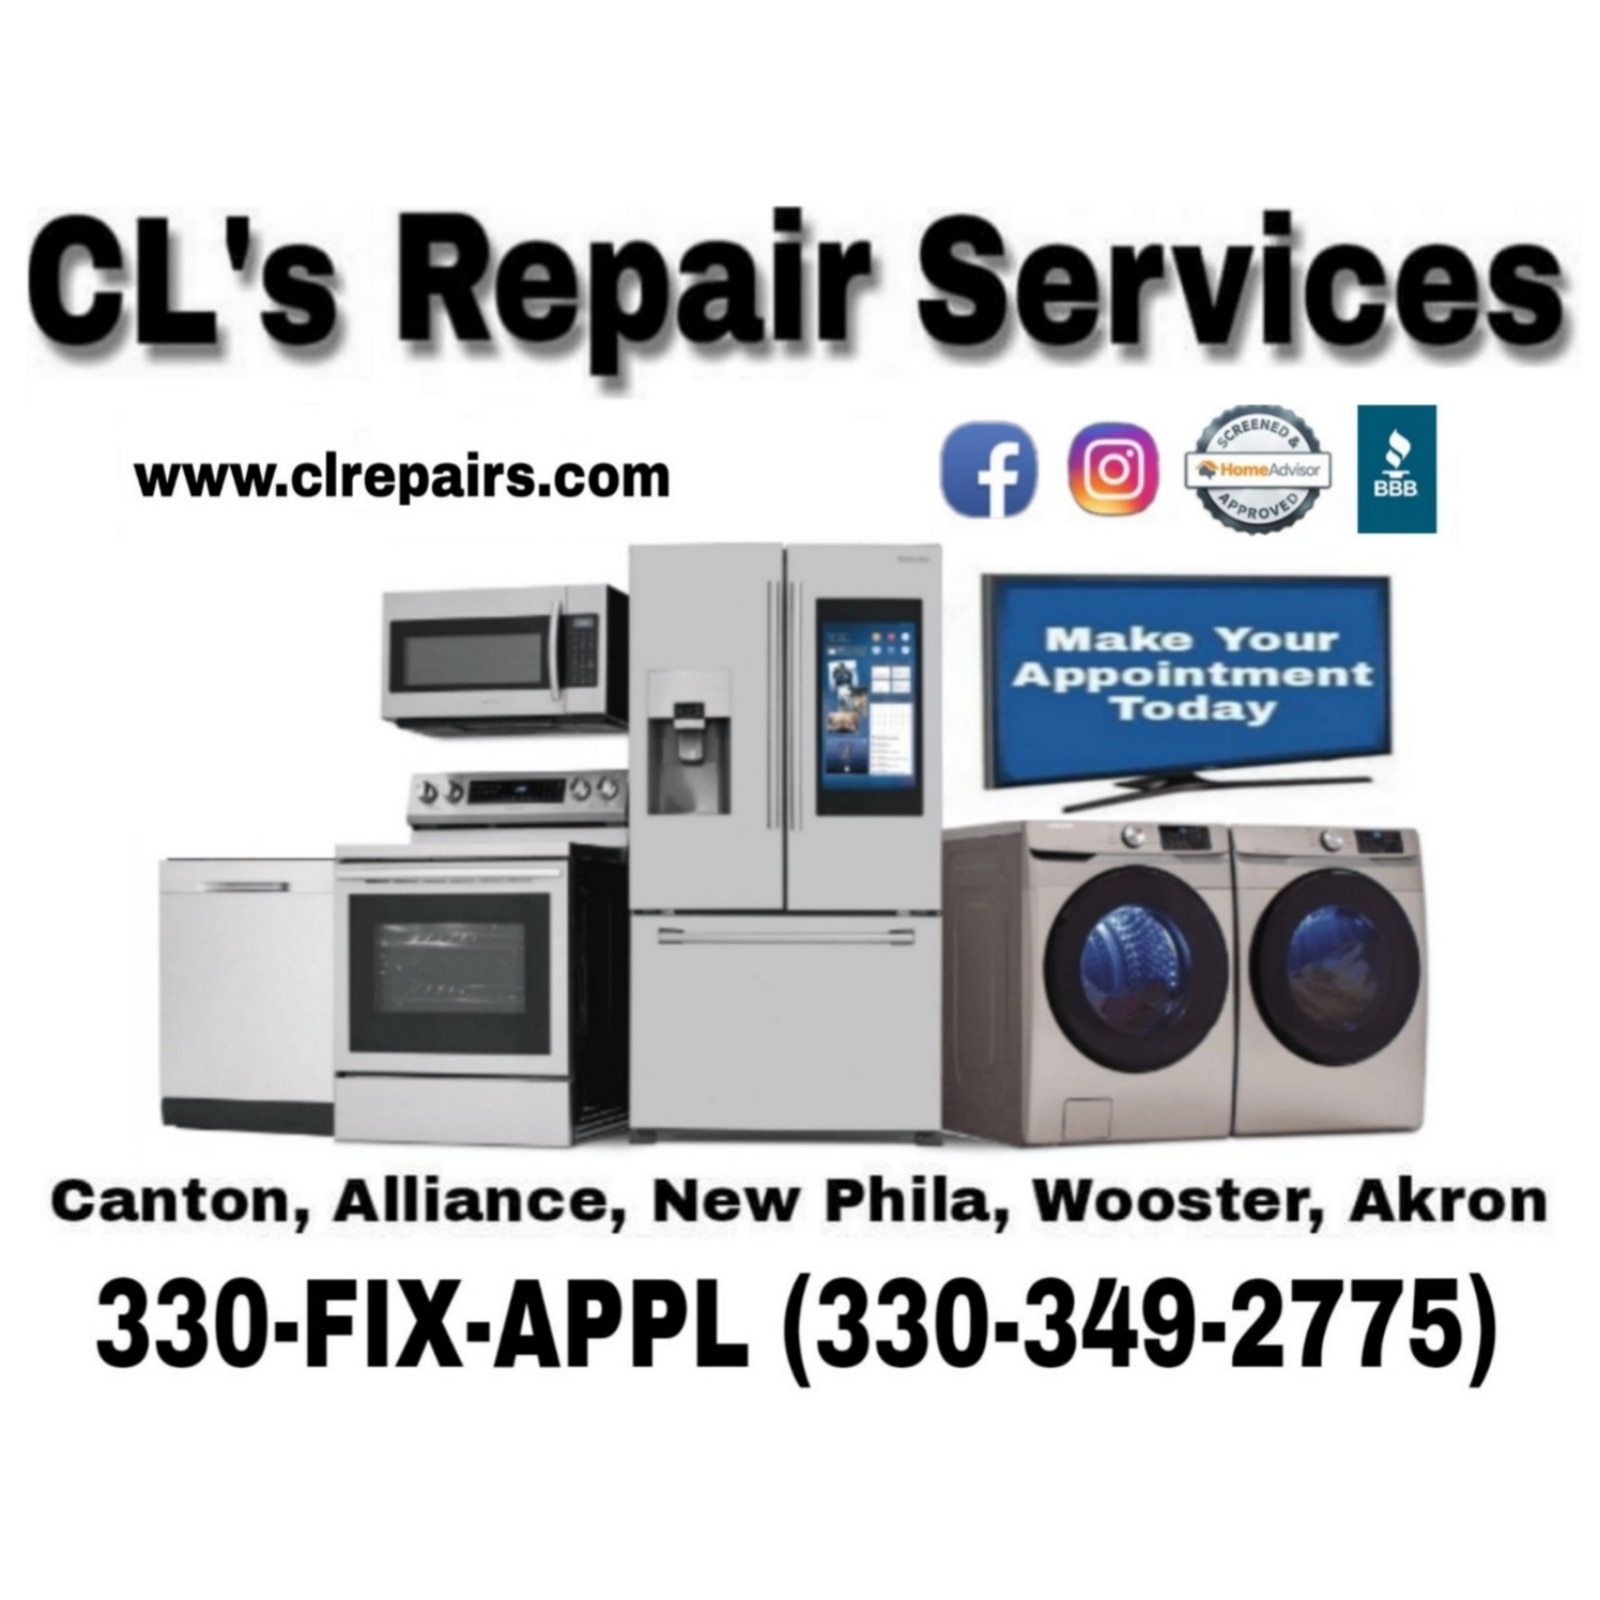 CL's Repair Services  logo